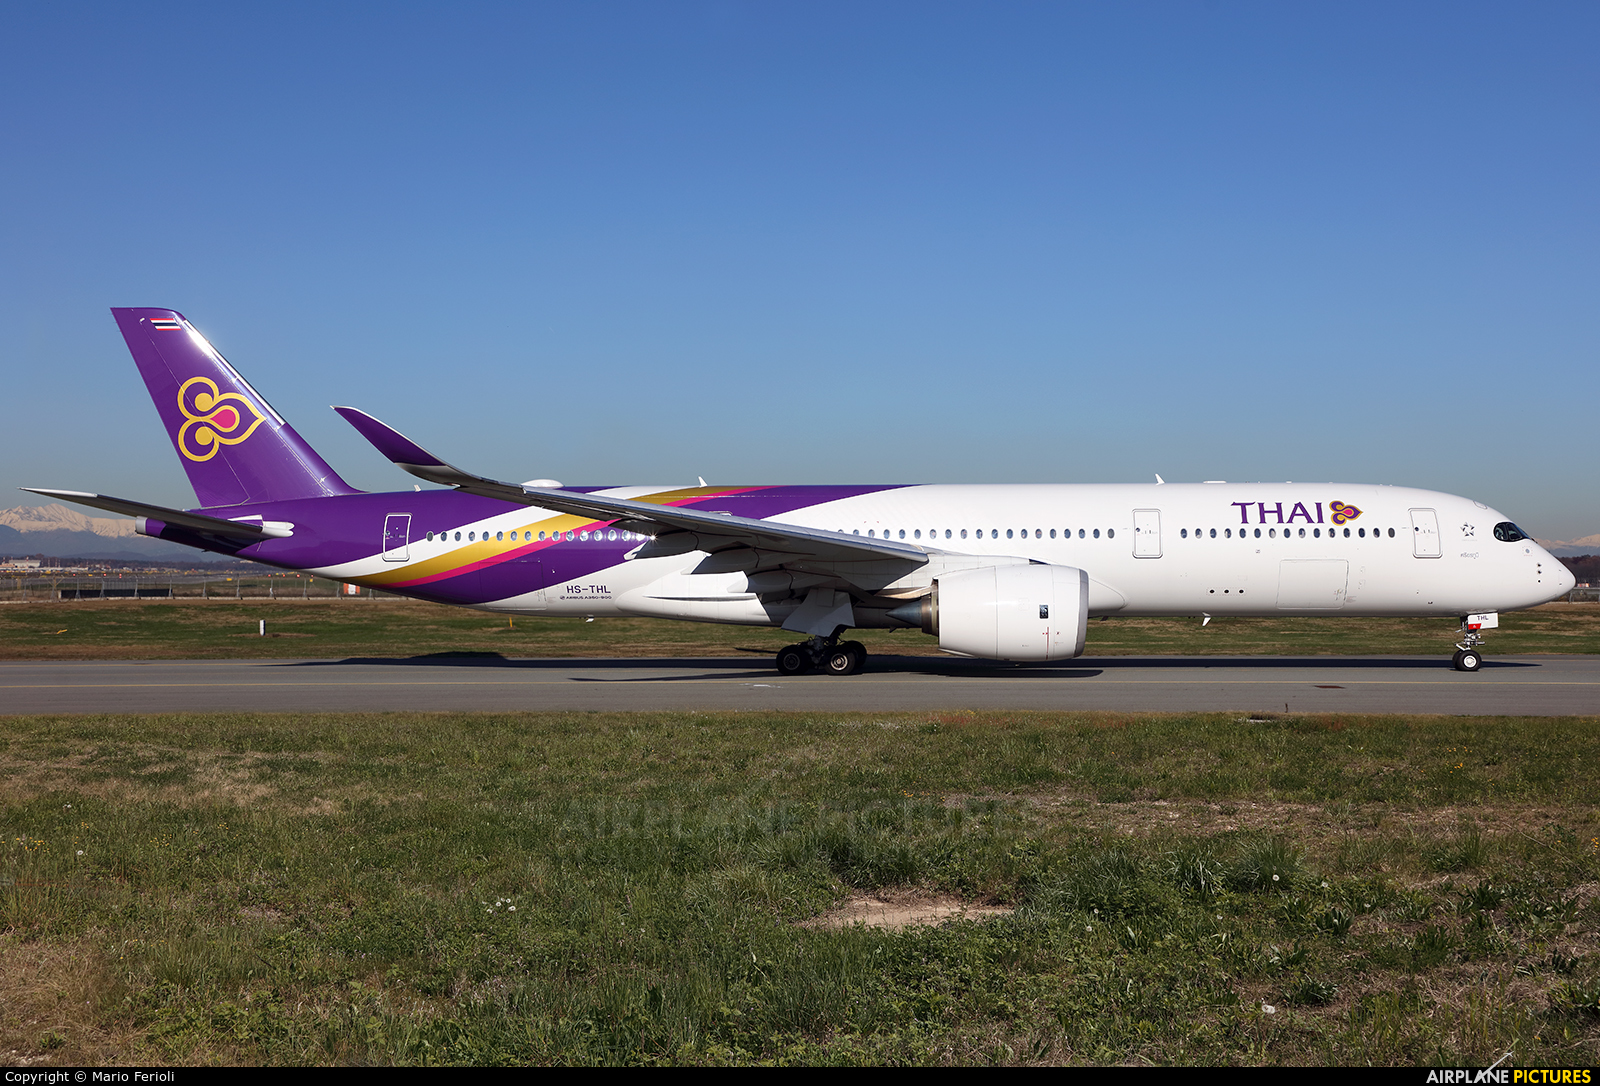 Thai Airways HS-THL aircraft at Milan - Malpensa